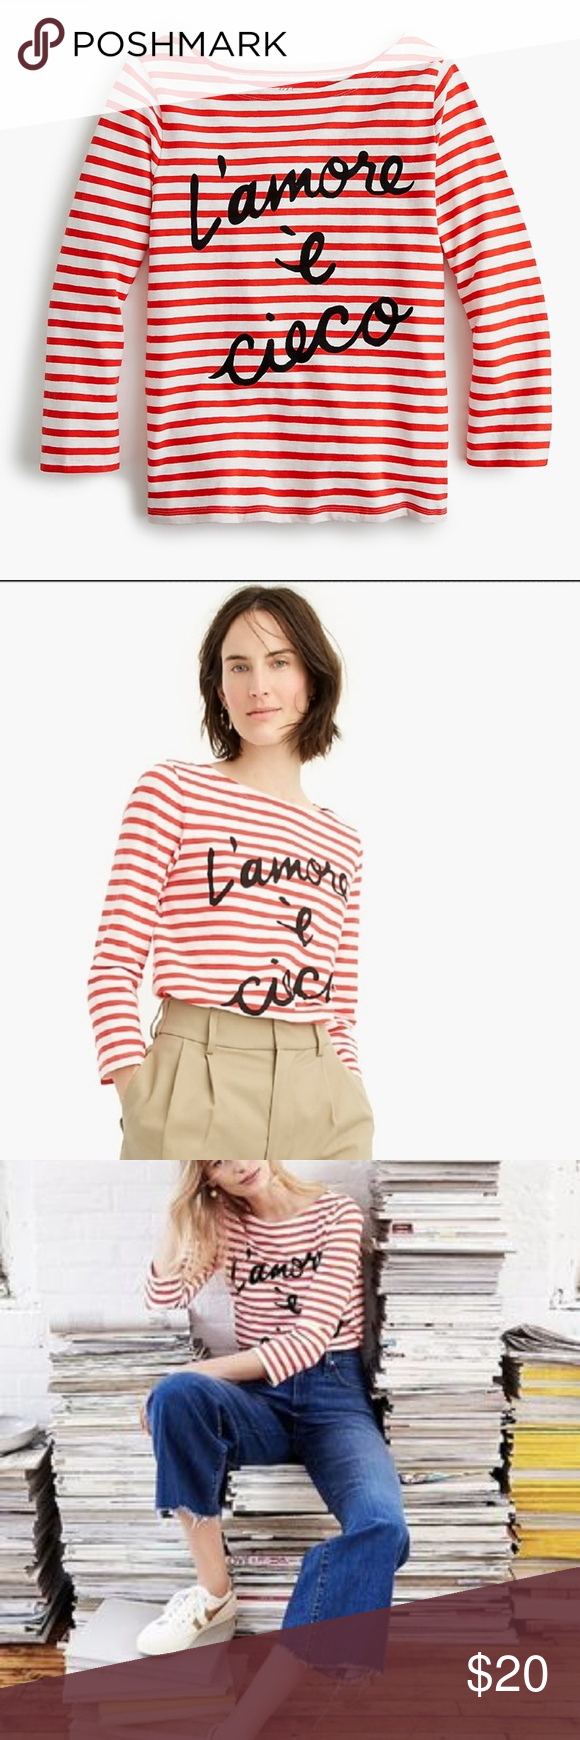 """J. Crew """"L'amore è cieco"""" Striped Boatneck T-Shirt This supercute striped T-shirt in an iconic sailor style with a boatneck silhouette. Plus, it's printed with a timeless expression (l'amore è cieco means """"love is blind"""" in Italian) to add a little romance to your everyday. This item is in excellent condition, with no signs of wear.  Size M. 100% Cotton. Machine wash. J. Crew Tops"""